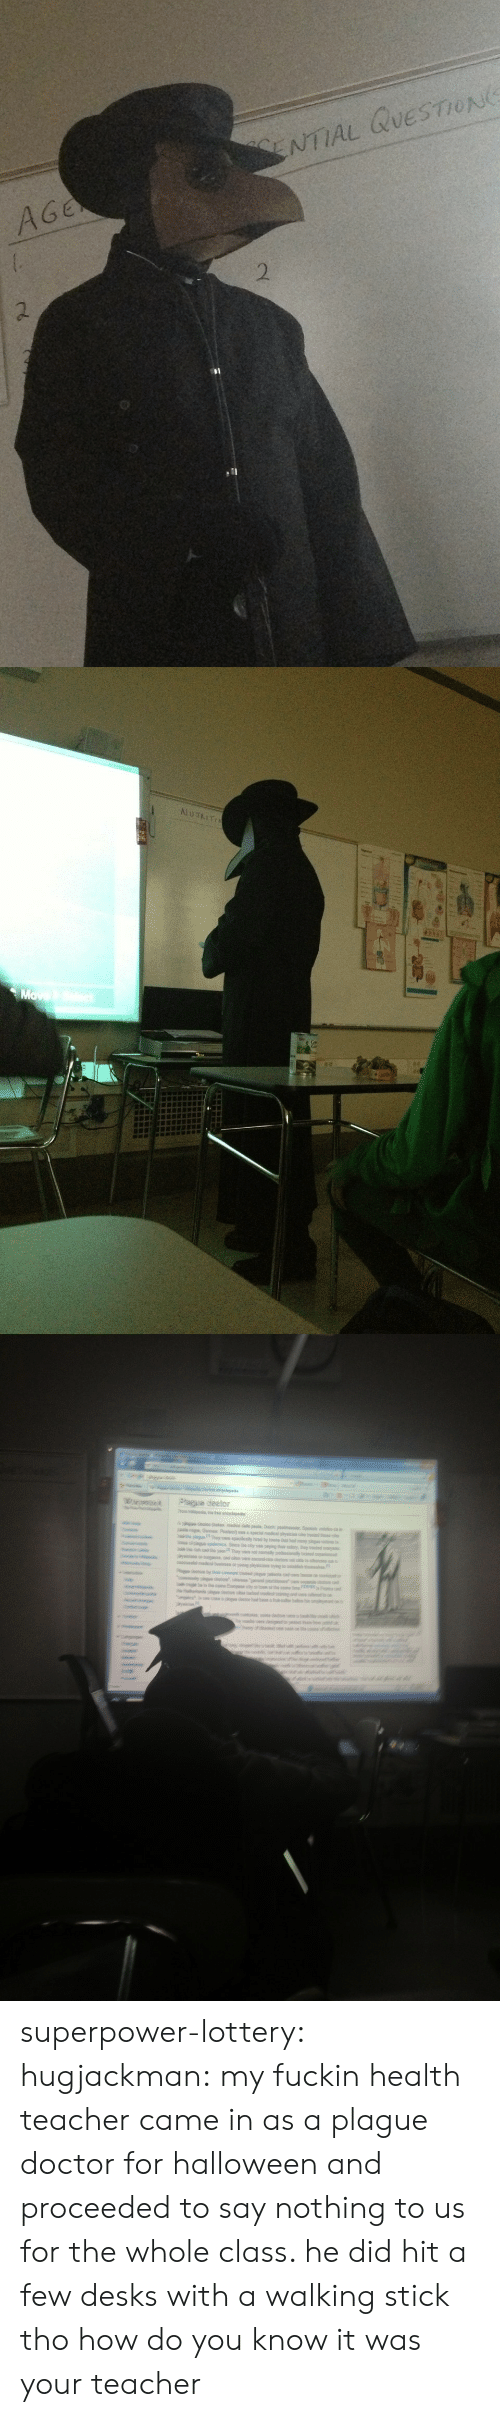 Doctor, Halloween, and Lottery: NTIAL QUESTION  AGe  2  , 1   AlUT superpower-lottery: hugjackman:  my fuckin health teacher came in as a plague doctor for halloween and proceeded to say nothing to us for the whole class. he did hit a few desks with a walking stick tho  how do you know it was your teacher